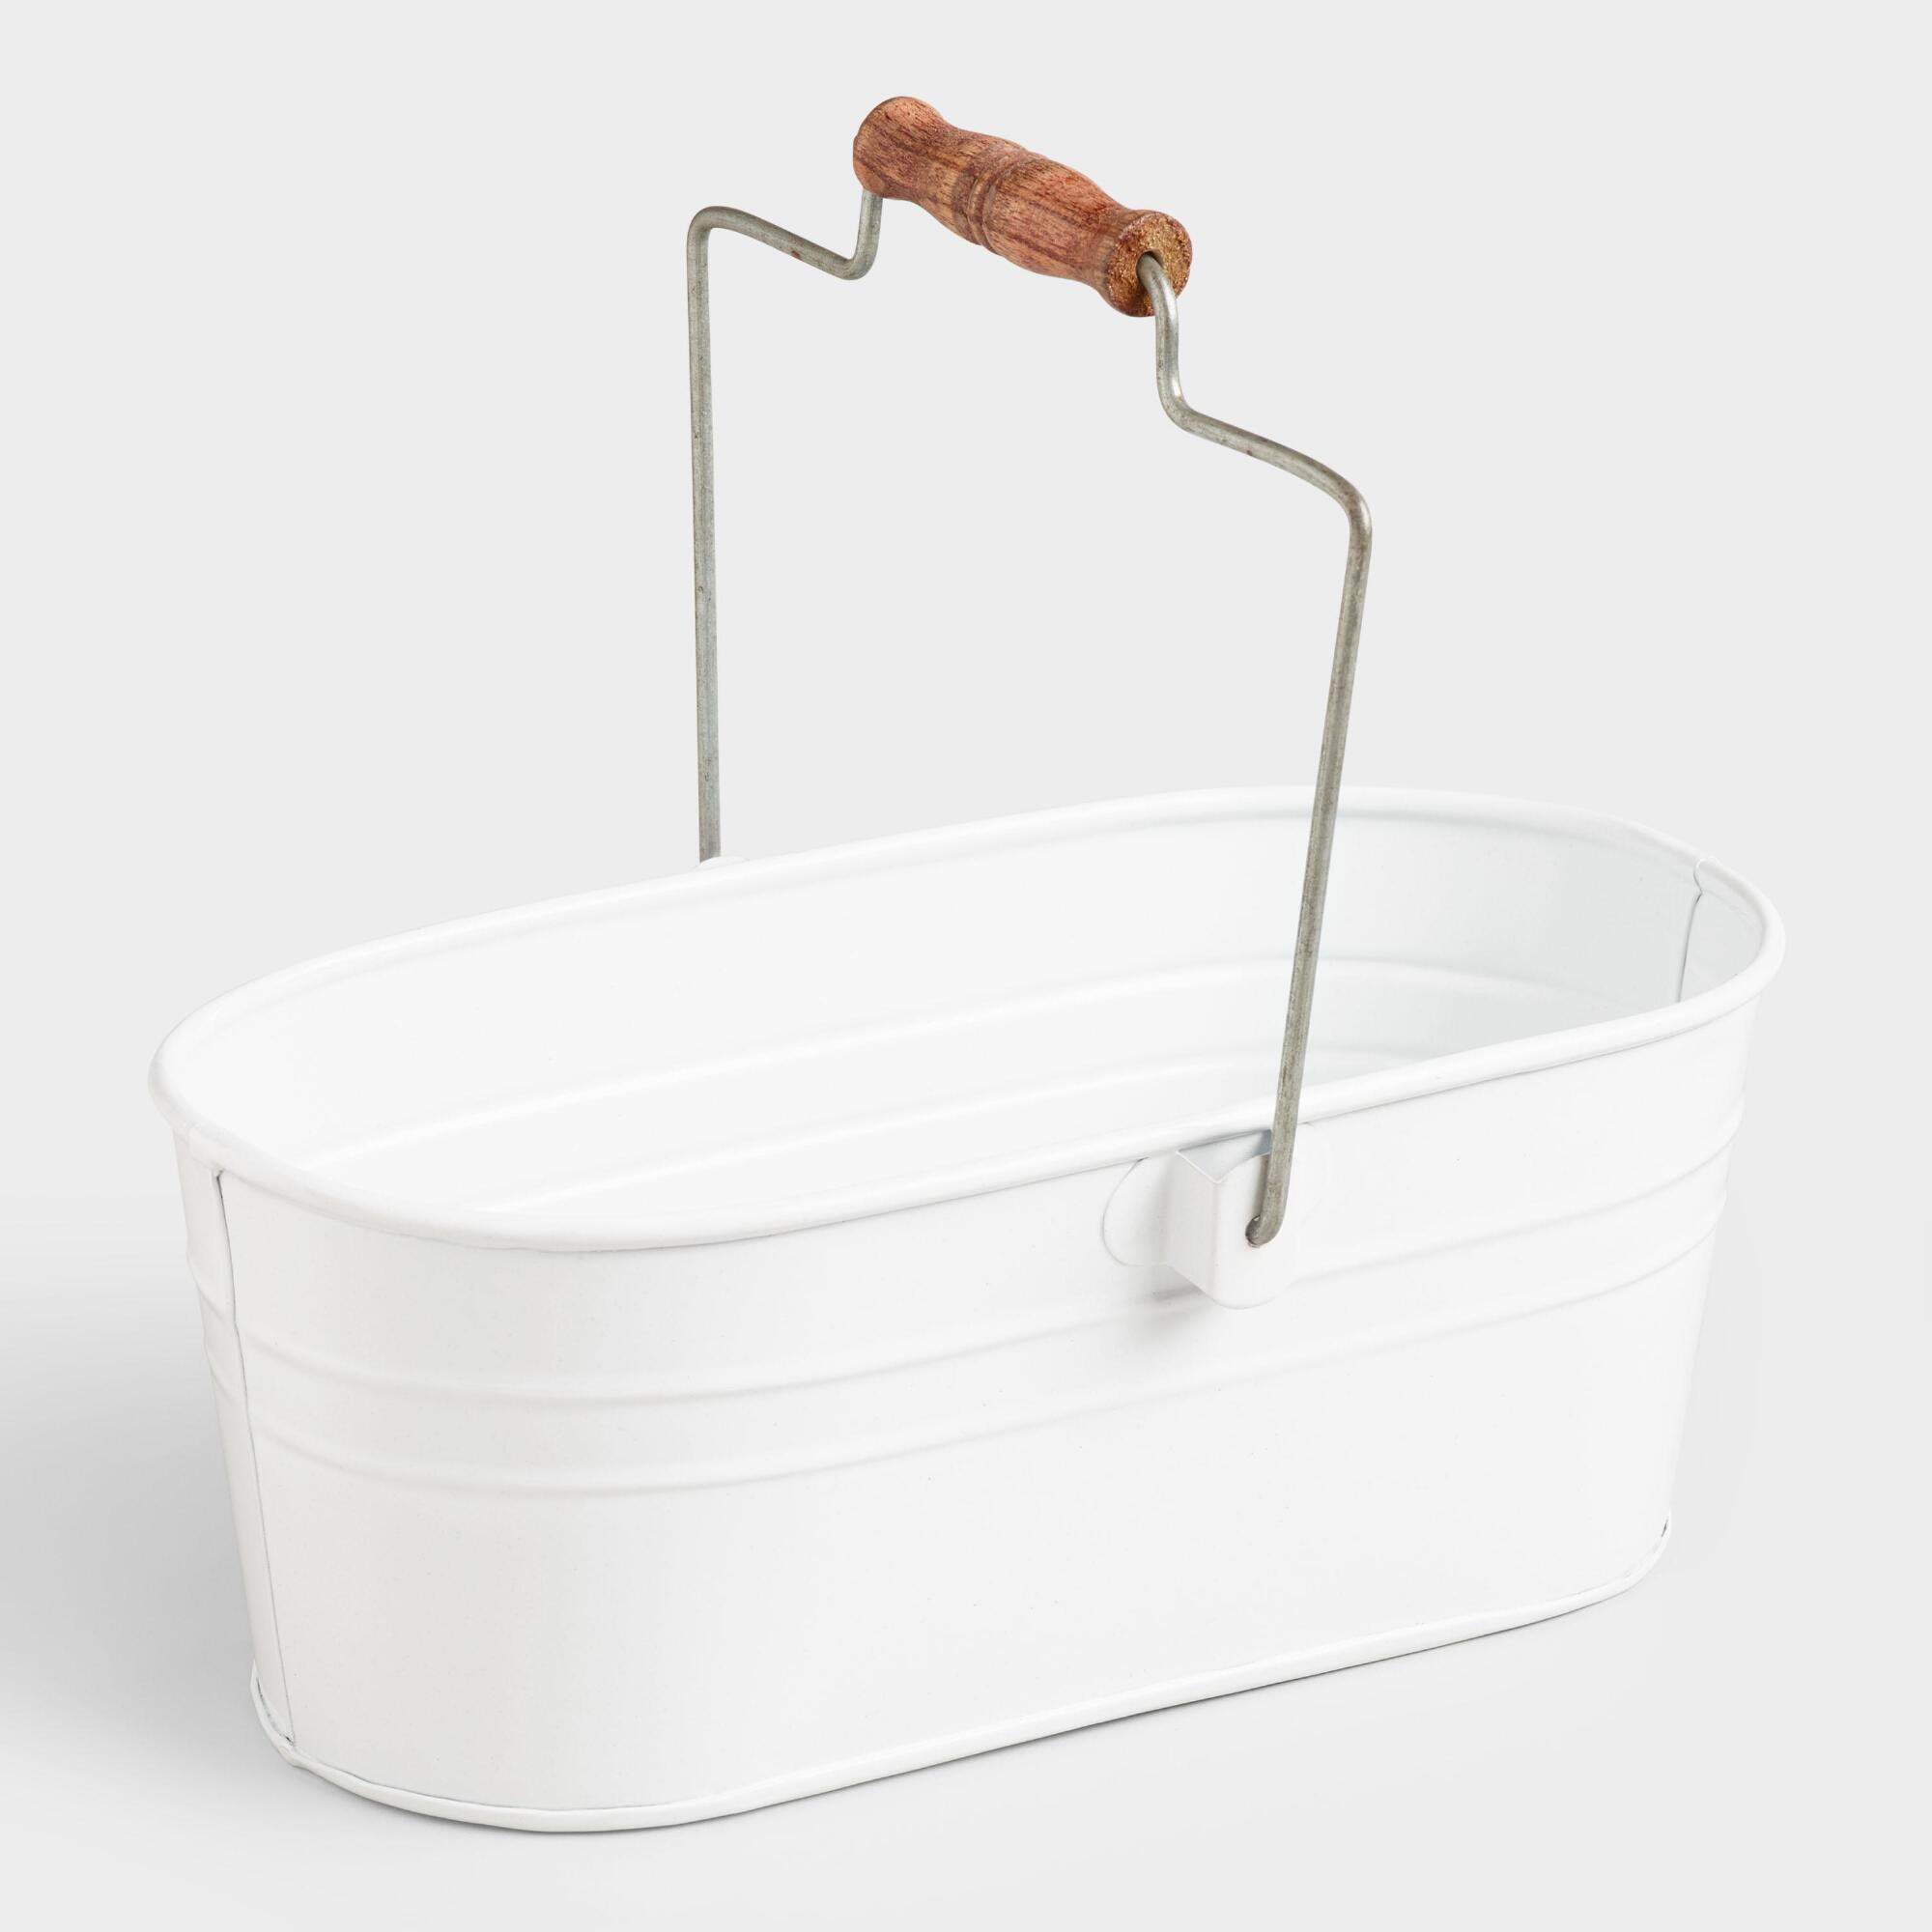 White metal cleaning caddy with handle